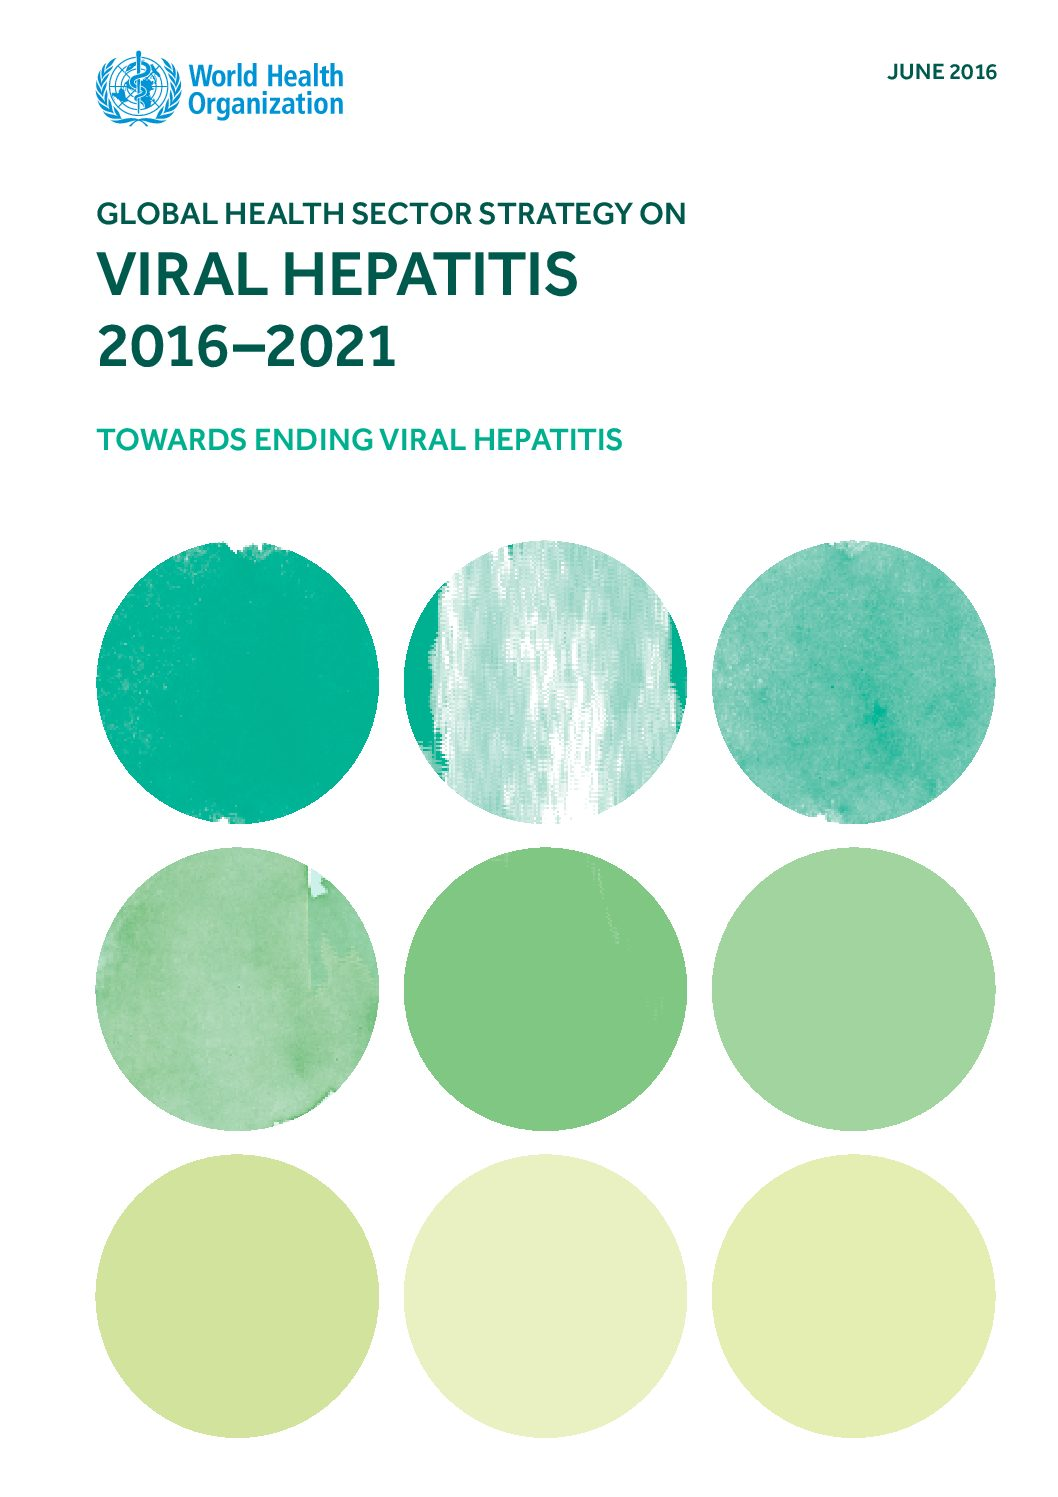 Global Health Sector Strategy On Viral Hepatitis 2016-2021. June 2016